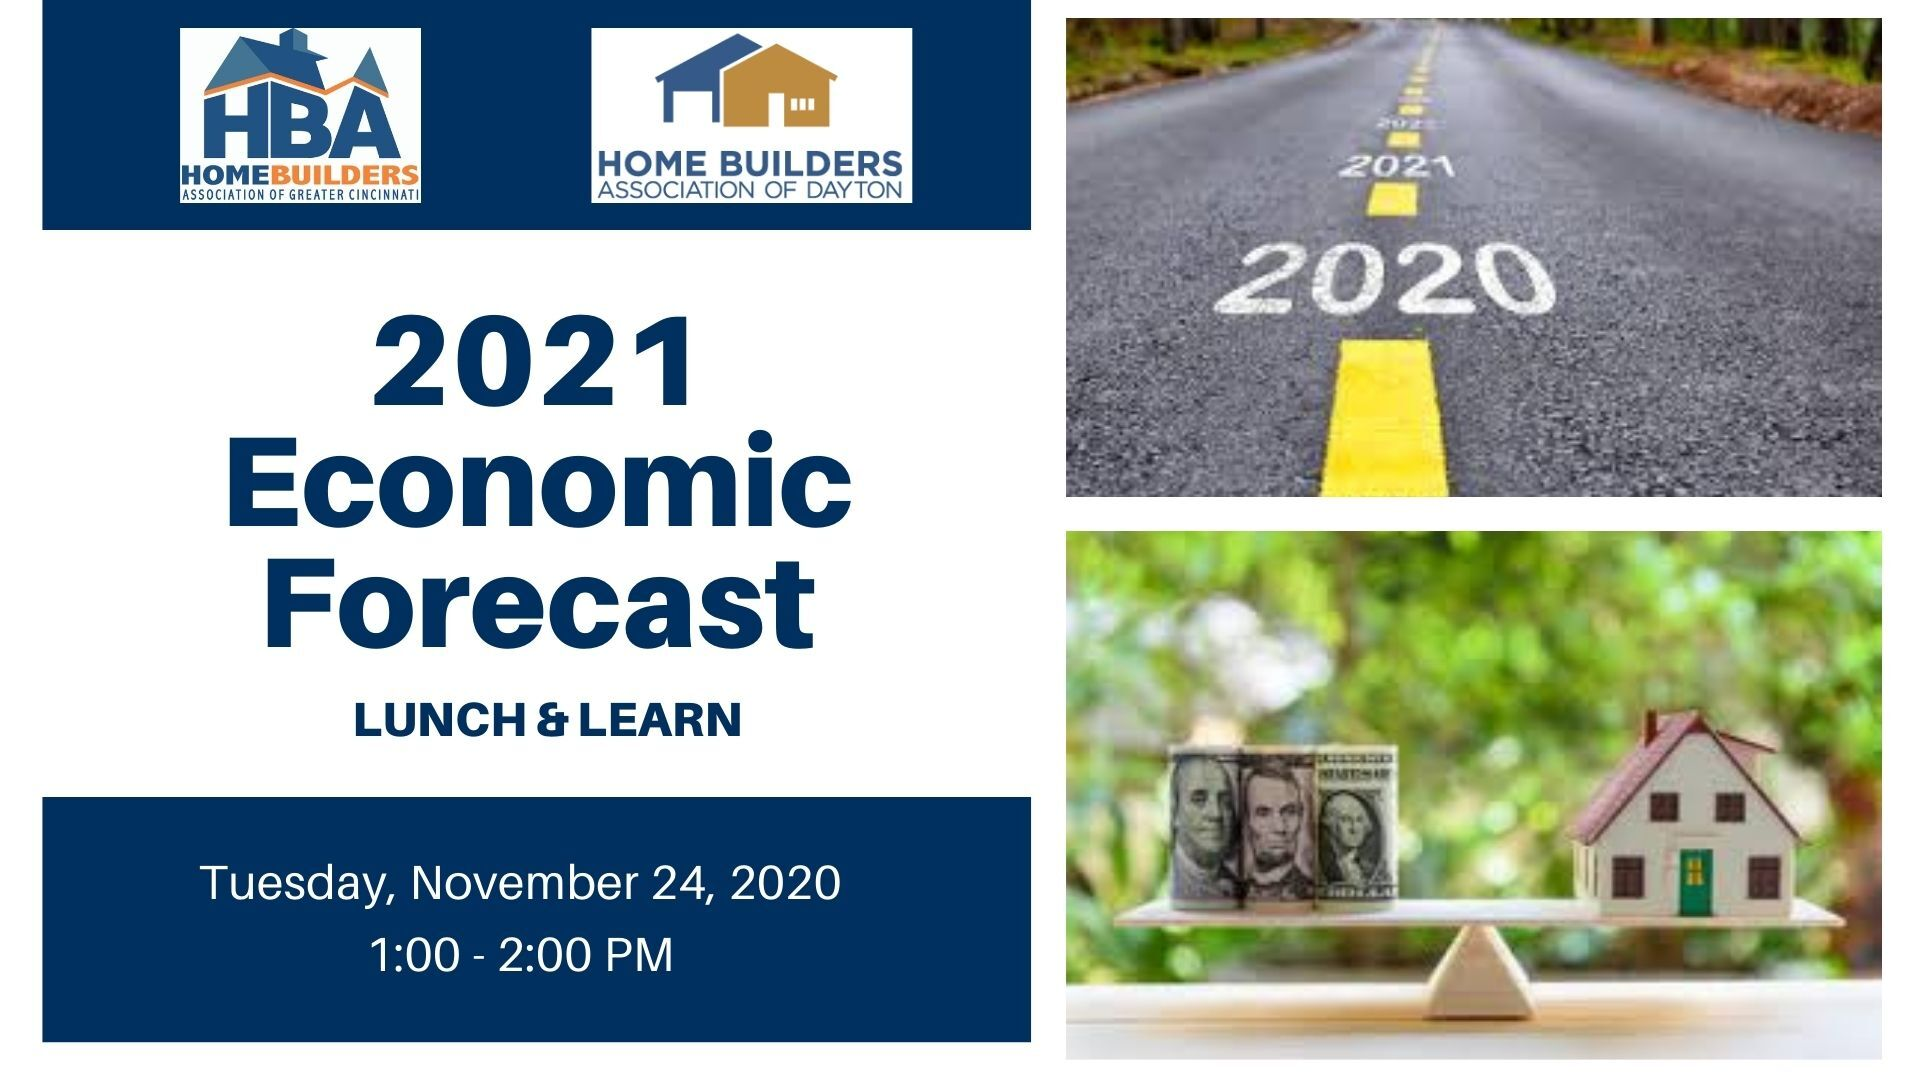 2021 Economic Forecast L&L